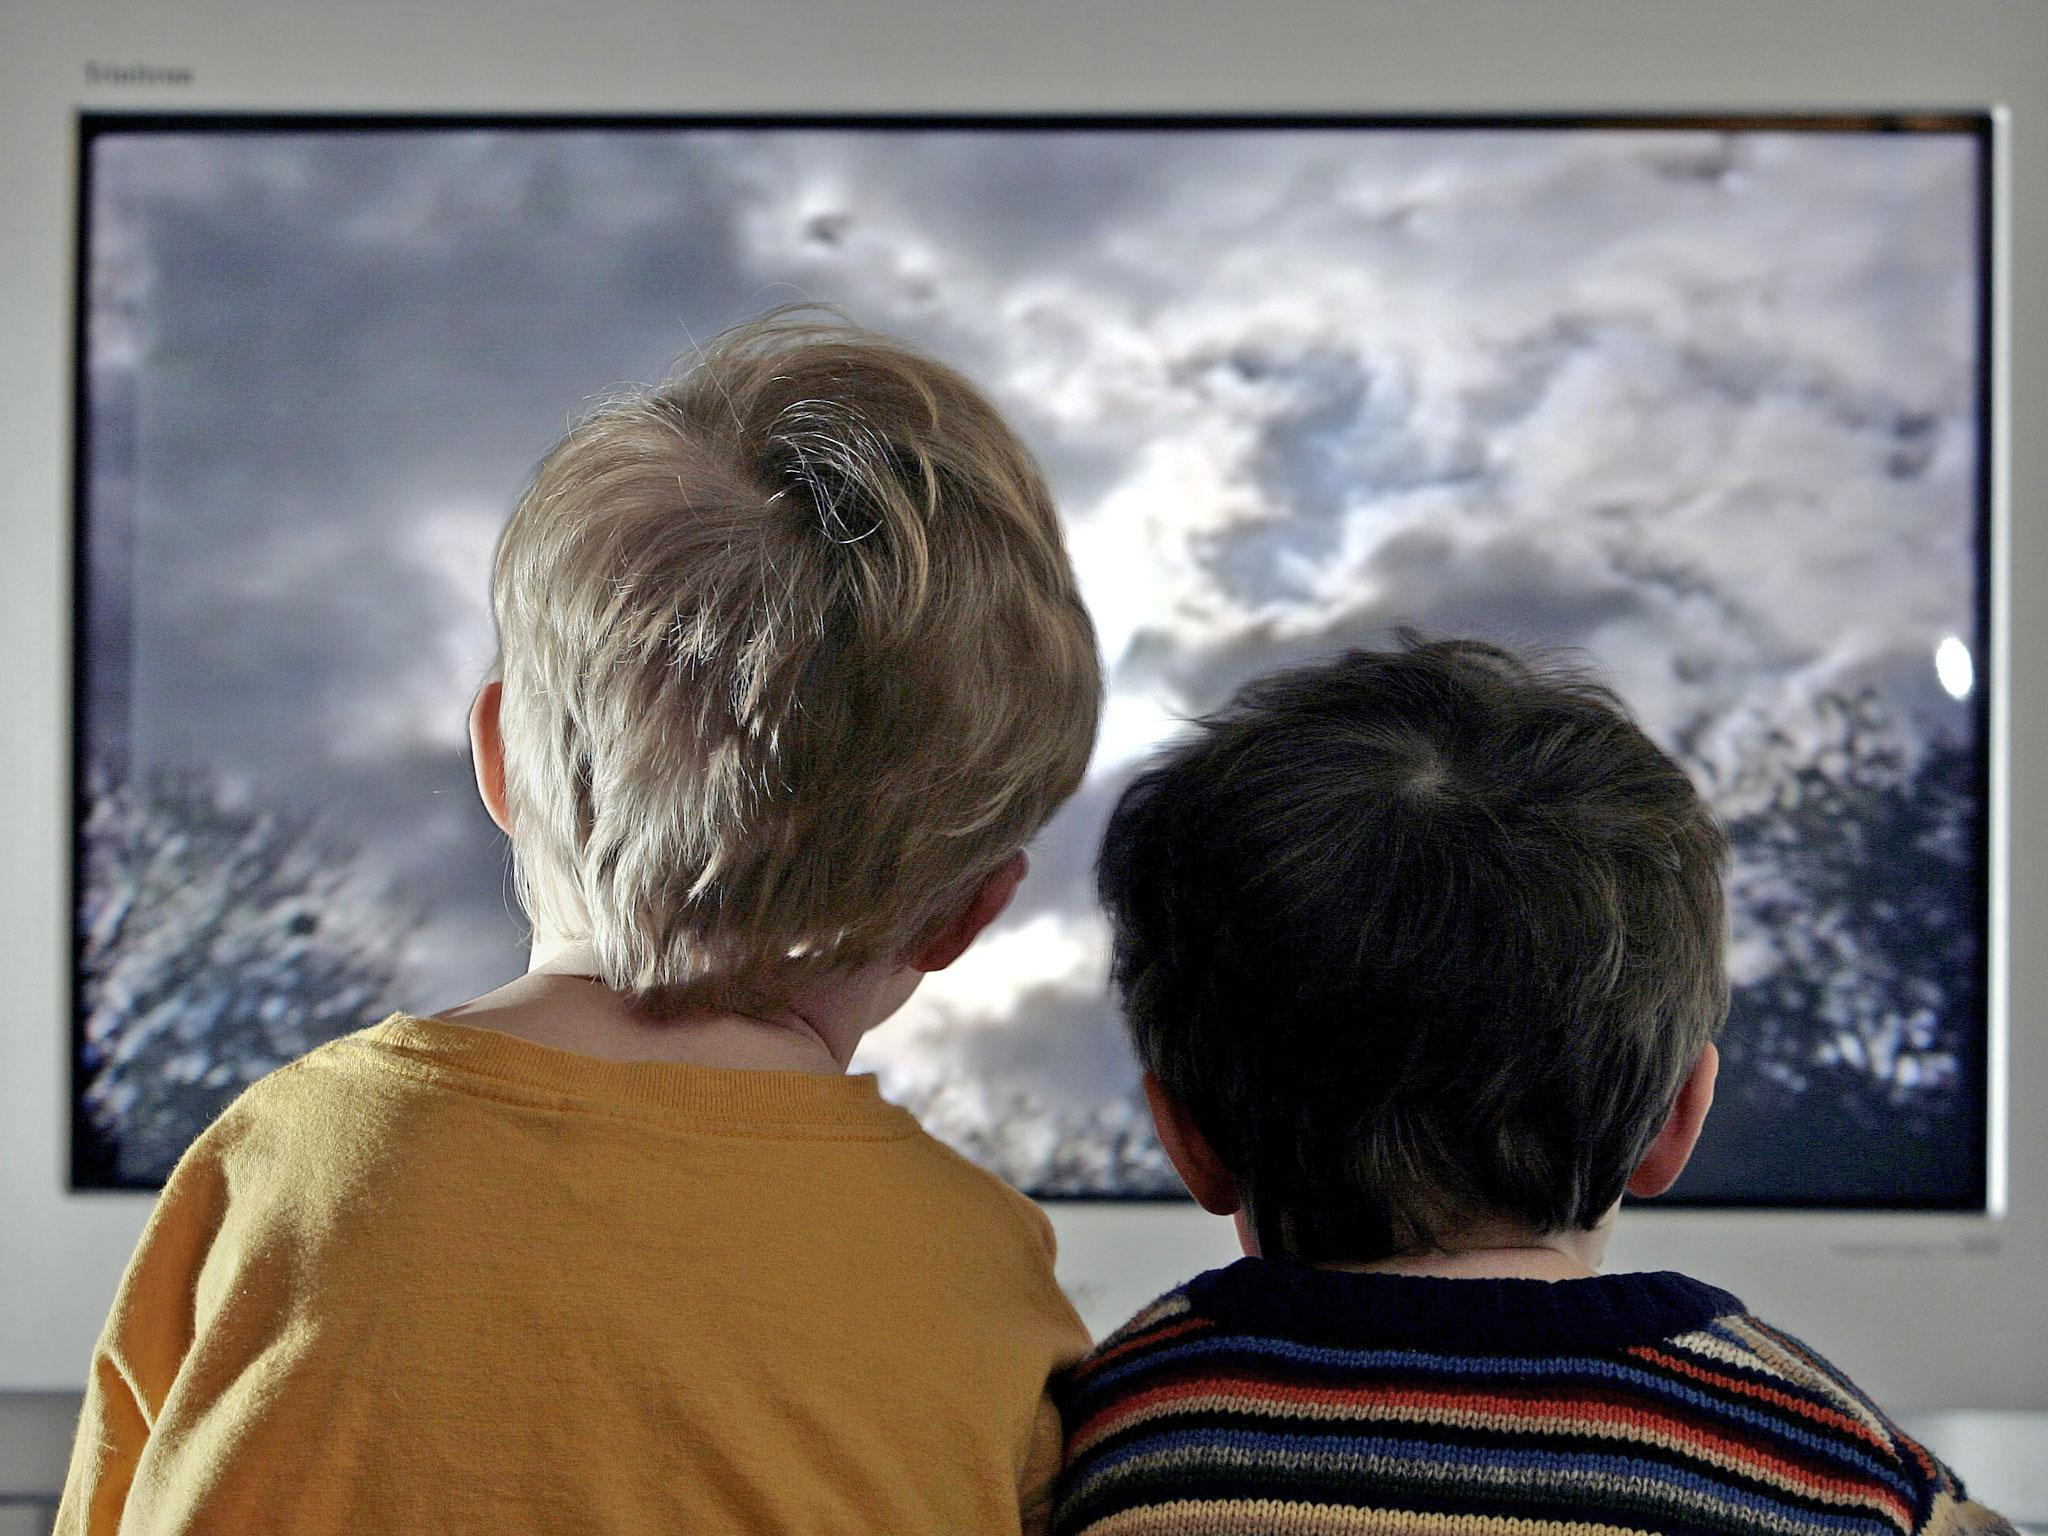 television viewing is harmful for children Watching too much tv is bad for your child's health - we're sure you've heard this piece of advice plenty of times even though many children's education advocates propagate the idea of children viewing more educational p.